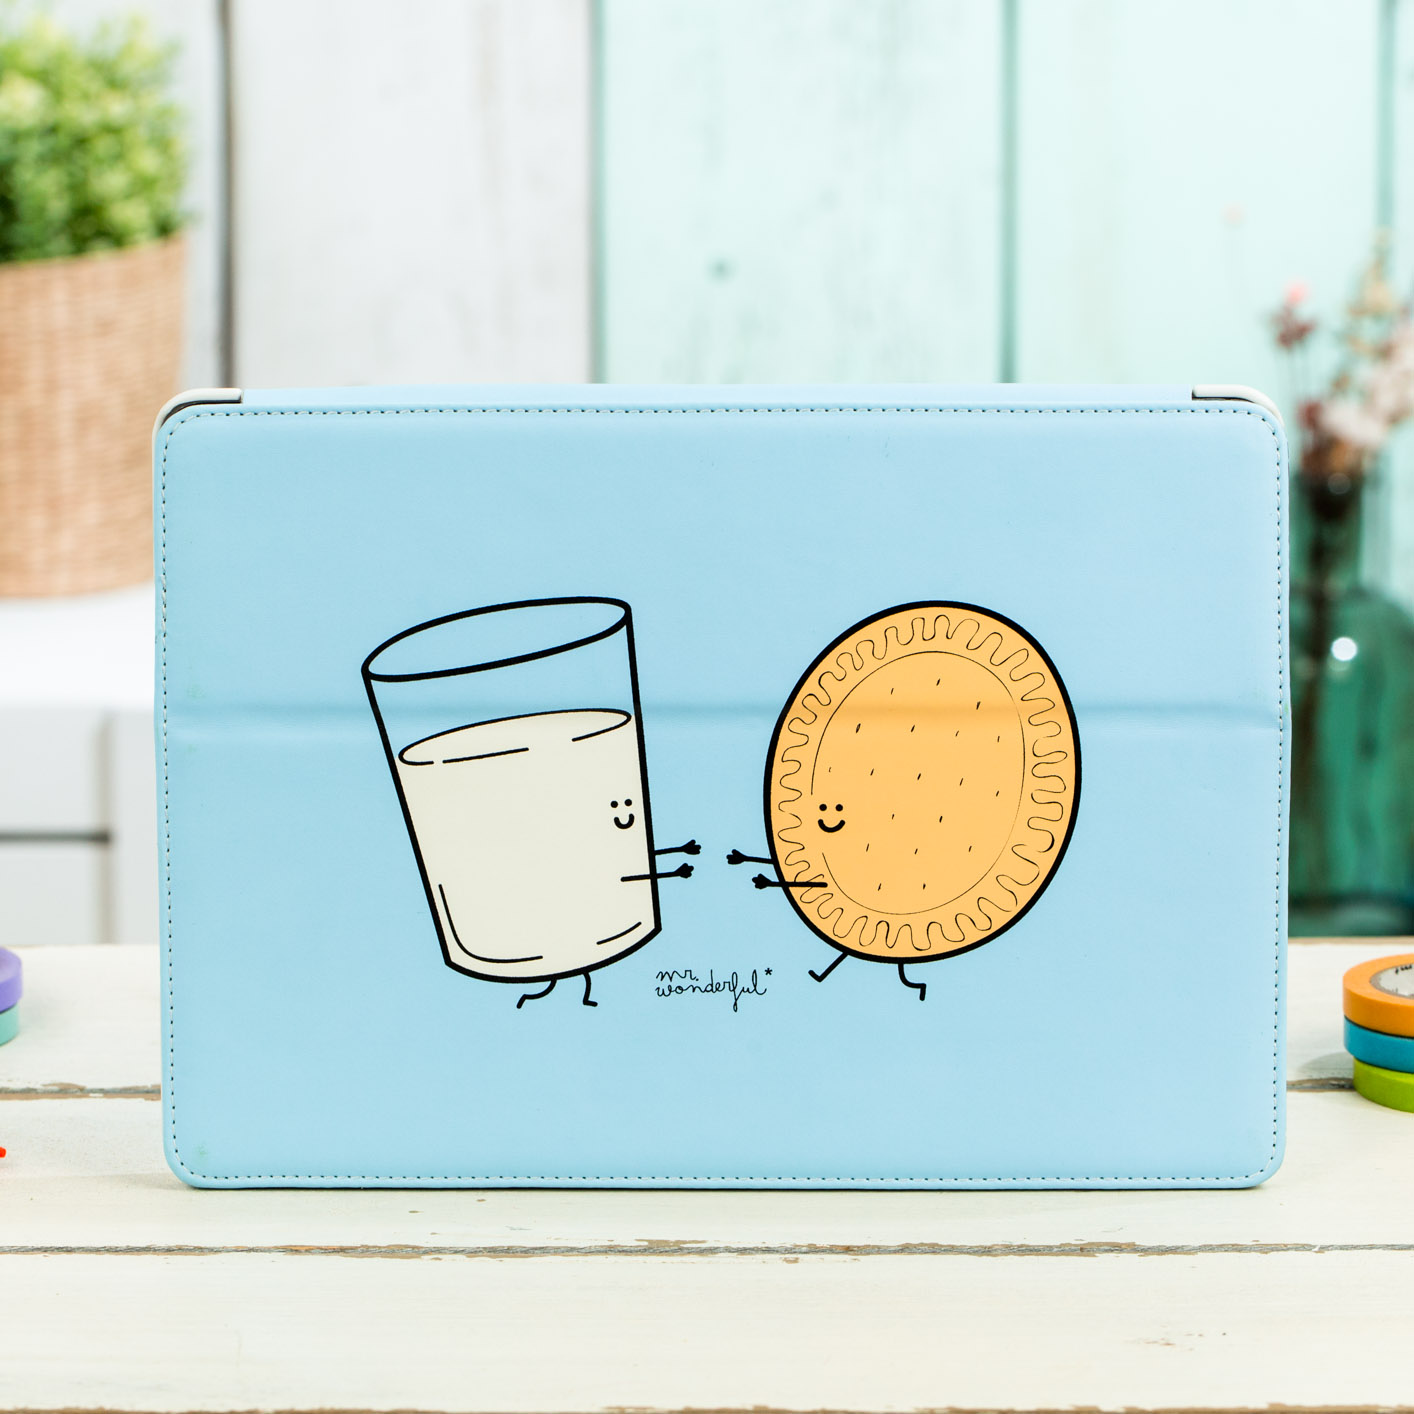 mrwonderful_MRIP001_funda-azul-ipad-air_vaso-leche-galleta-13